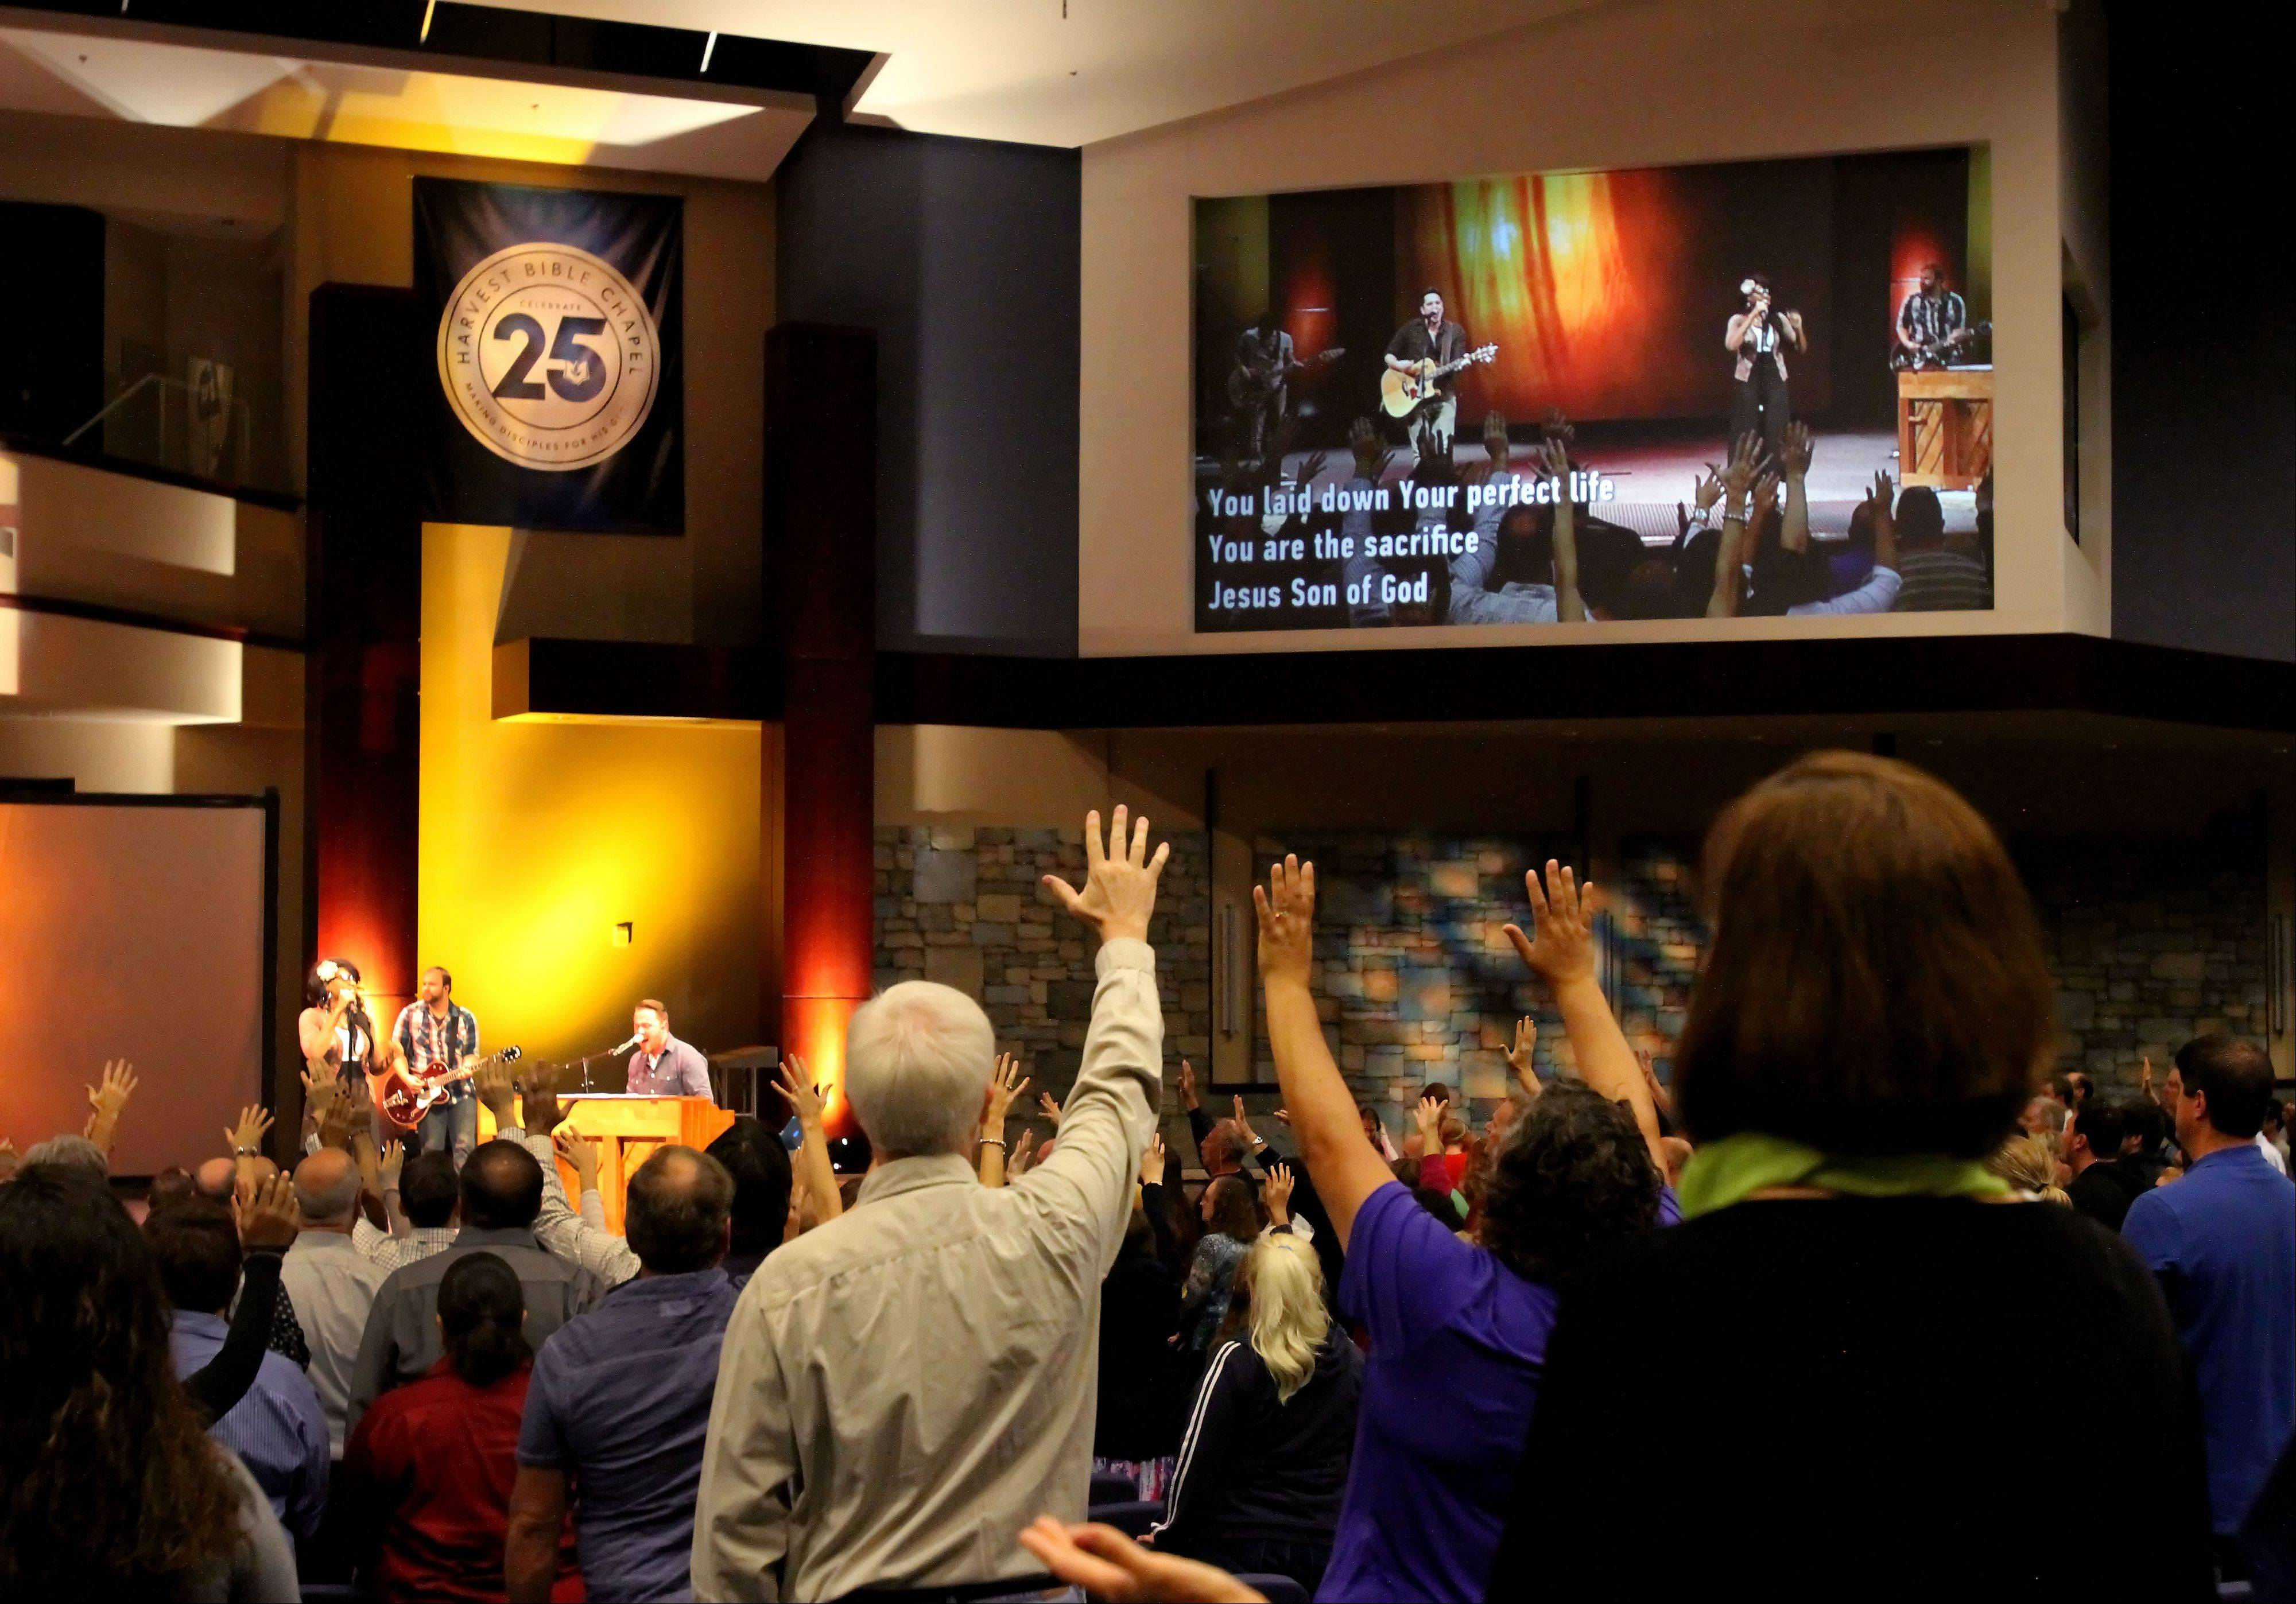 Pastor James MacDonald, top, speaks at the pulpit in the Elgin branch of Harvest Bible Church, which also hosted the Vertical Church Band, above, at a recent Sunday service. MacDonald speaks from a different Harvest Bible house of worship each week, while his message is beamed to the other churches.